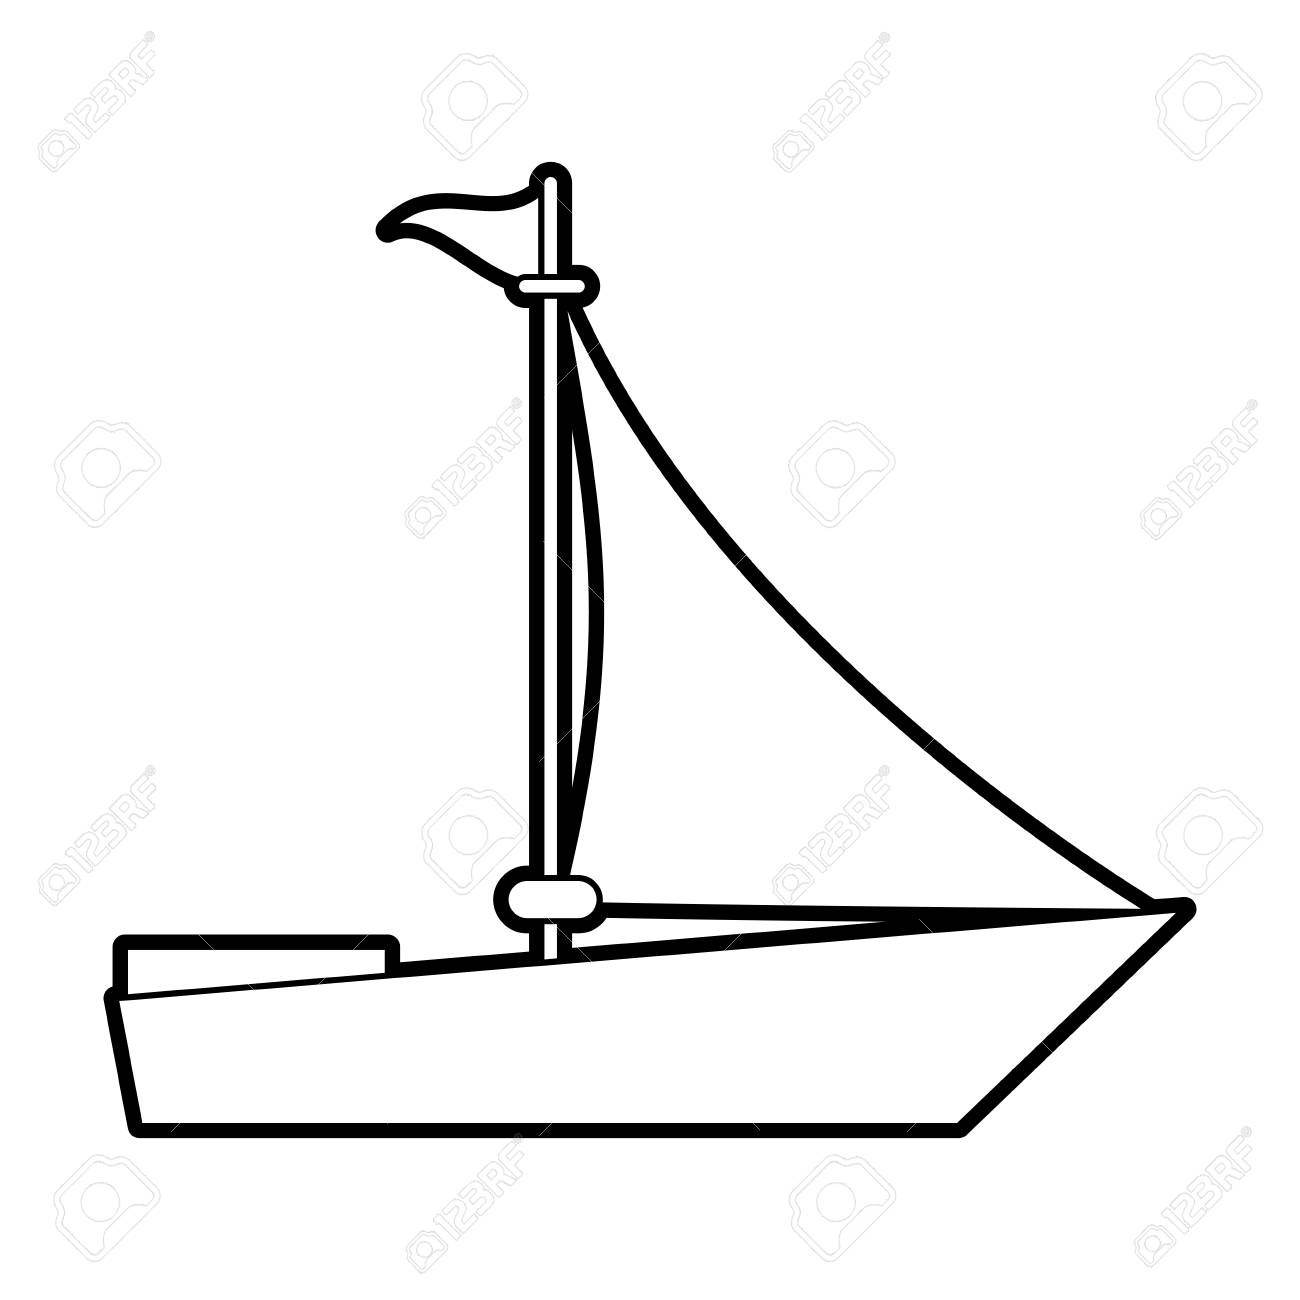 1300x1300 Sketch Silhouette Image Wooden Boat With Sail Vector Illustration